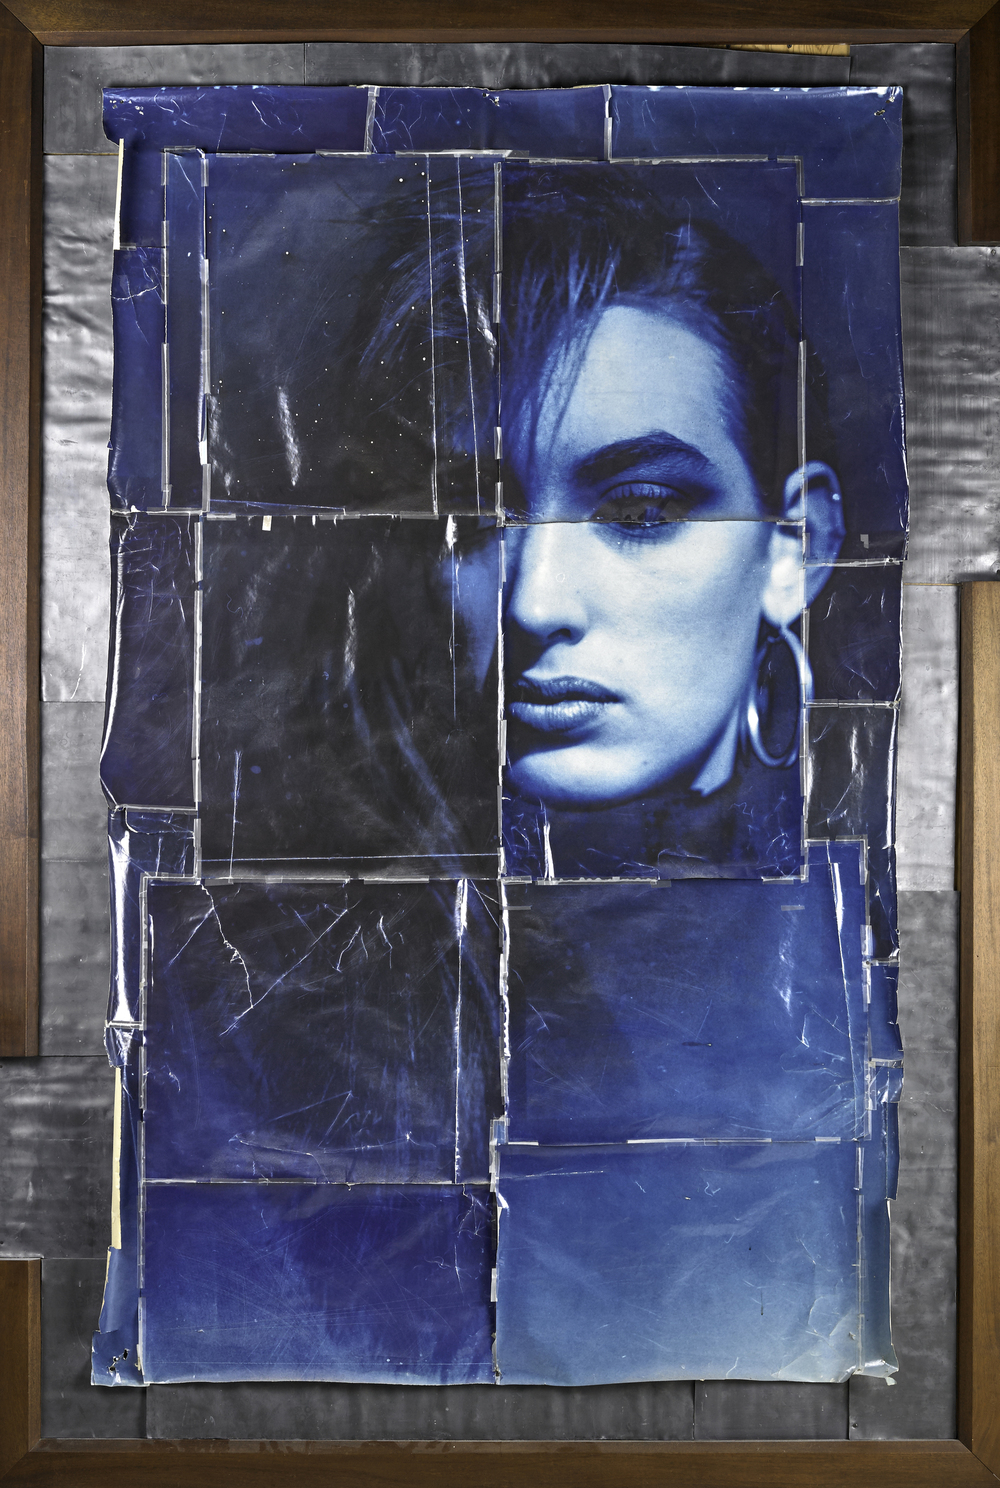 Blue Lisa, 1987, toned silver print, lead, tape and wood, 97 1/2 x 68 1/4 inches